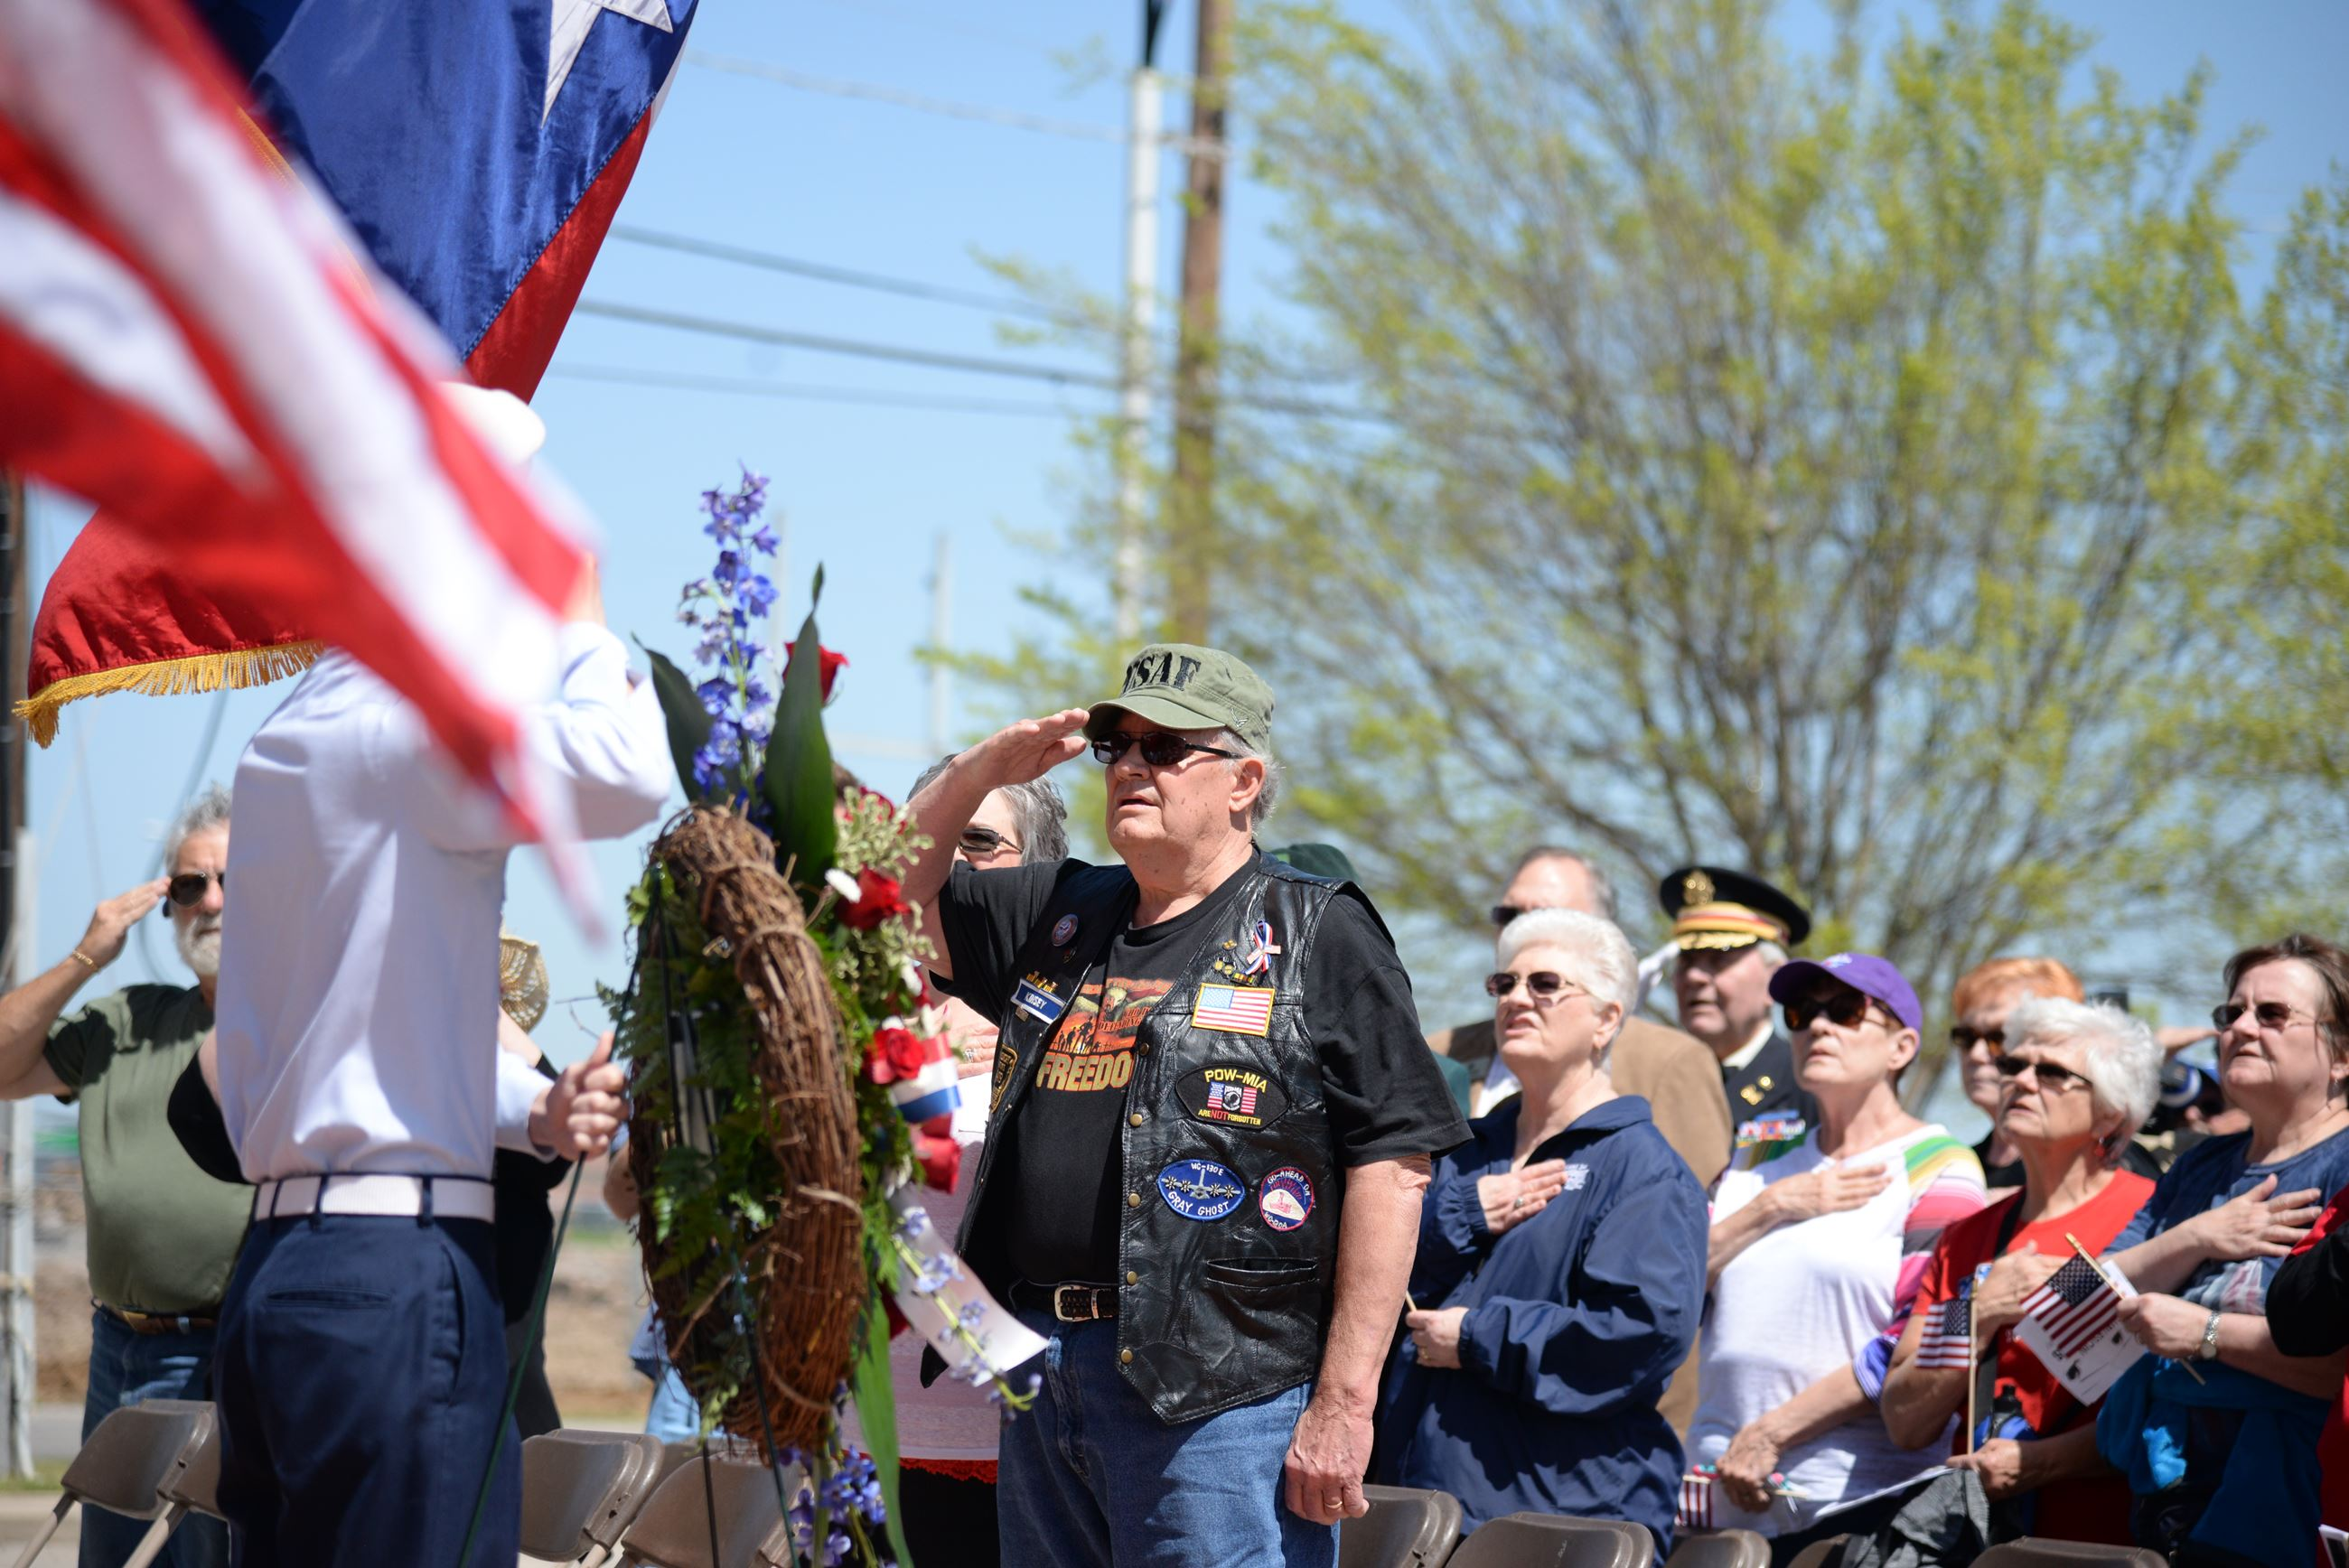 Vietnam Veteran saluting flag